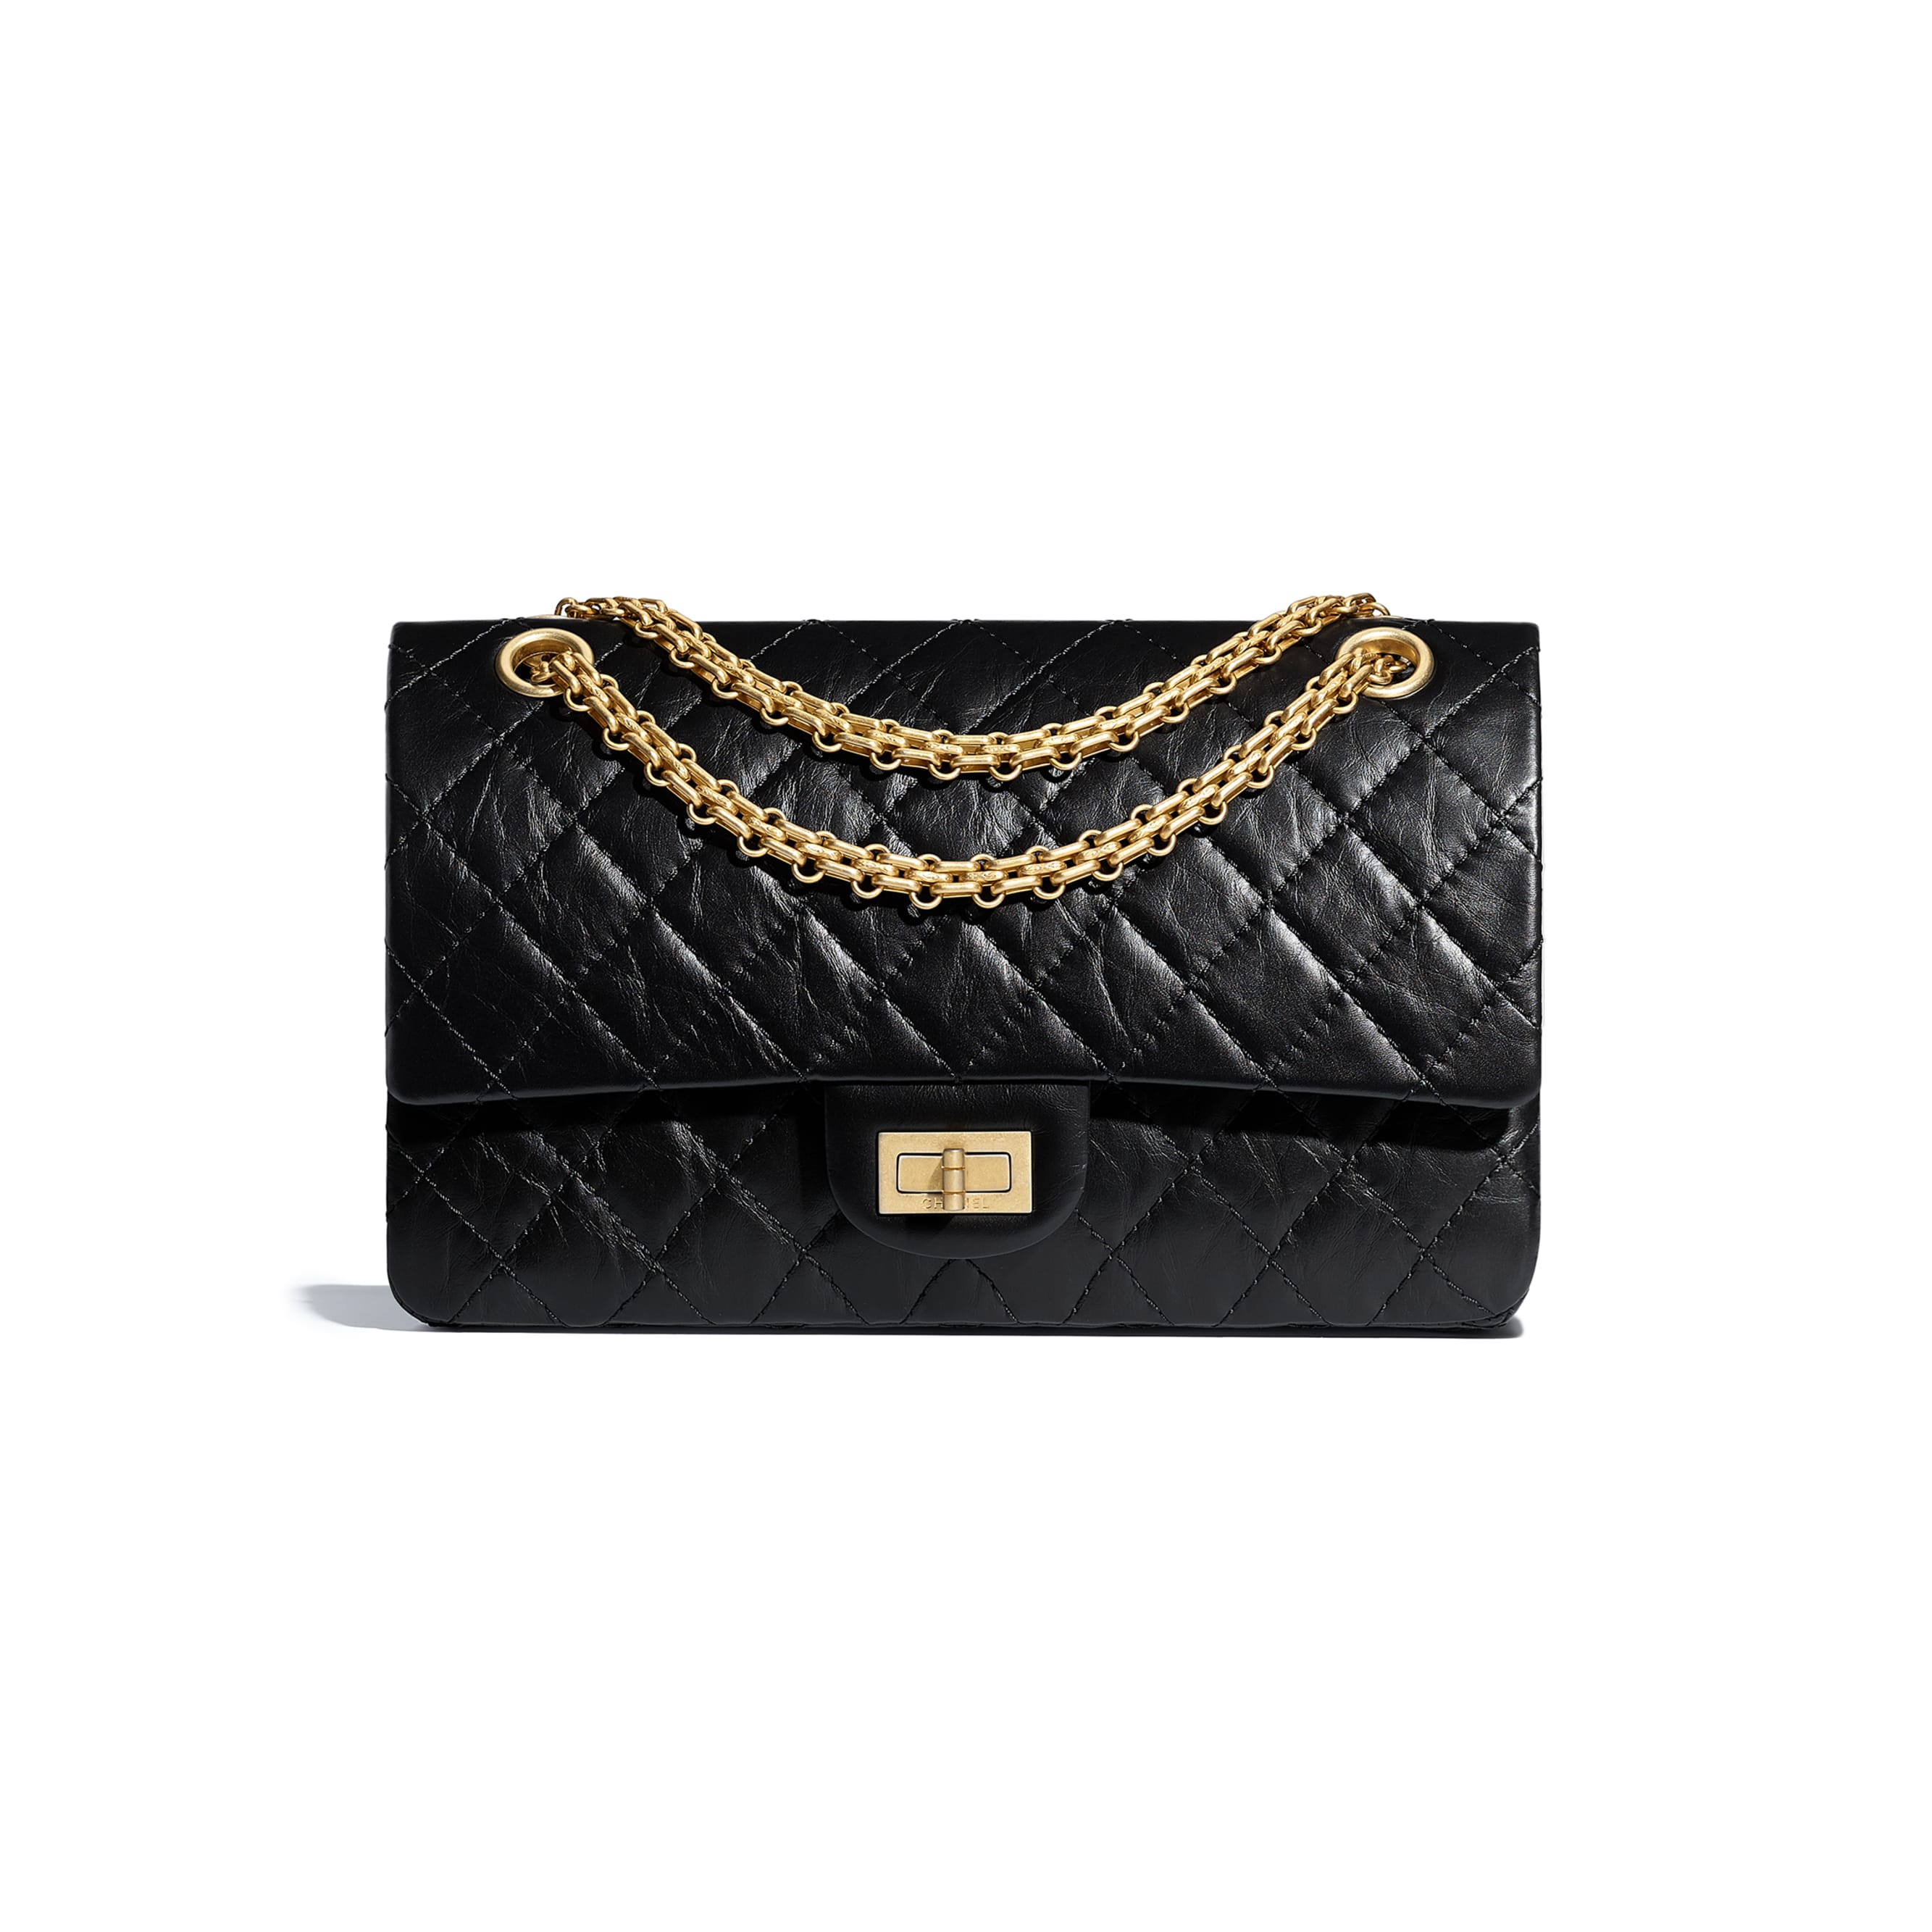 2.55 Handbag - Black - Aged Calfskin & Gold-Tone Metal - Default view - see standard sized version